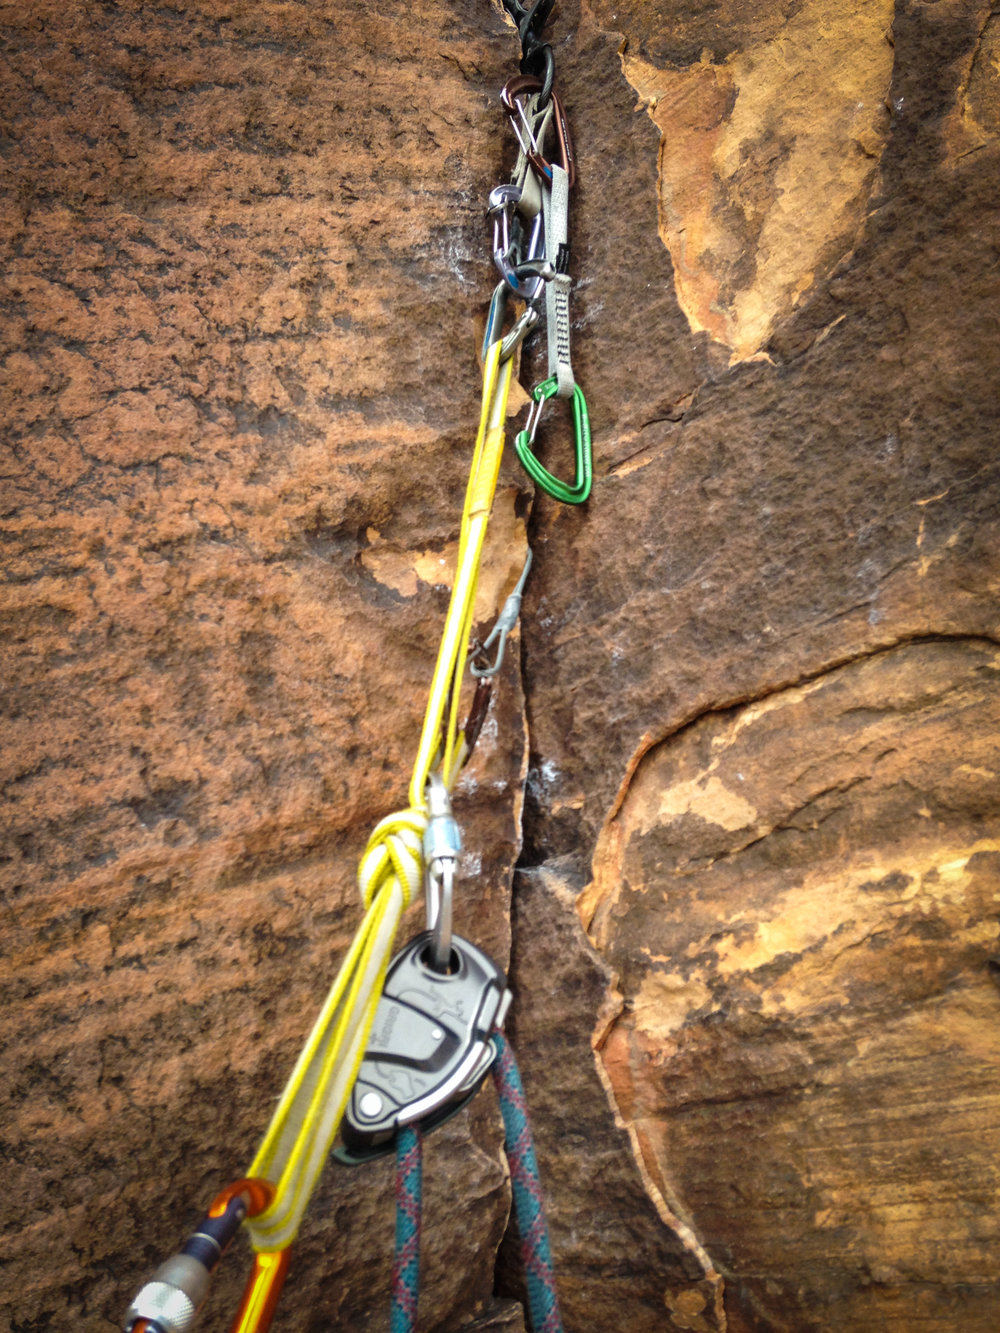 The GriGri + used on a gear anchor in Red Rocks.